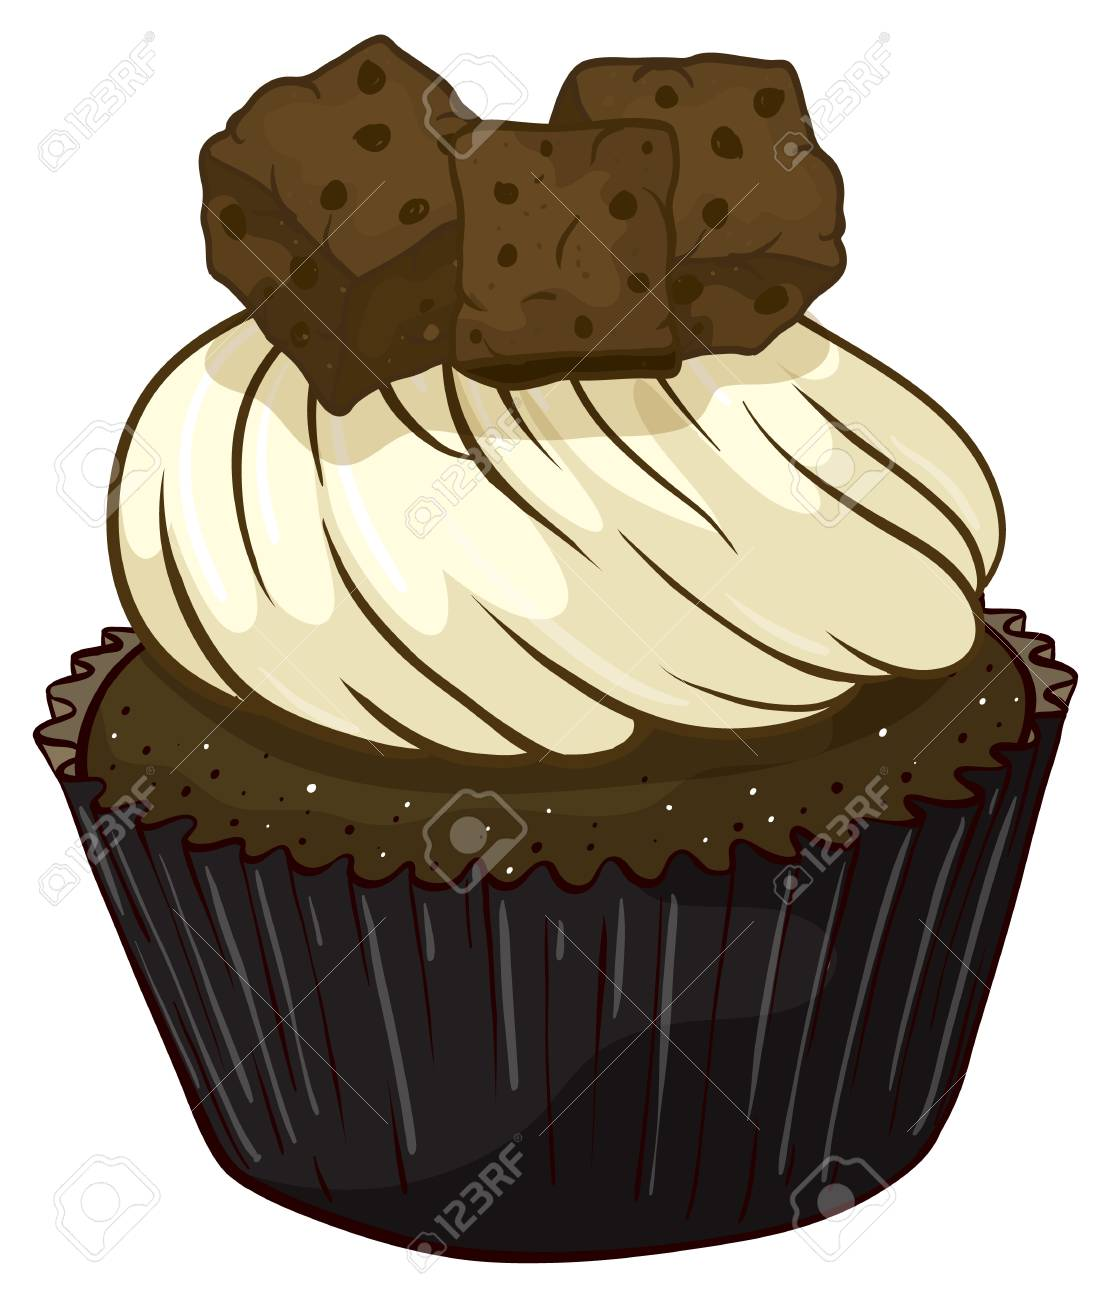 Illustration of an isolated cupcake Stock Vector - 16115588